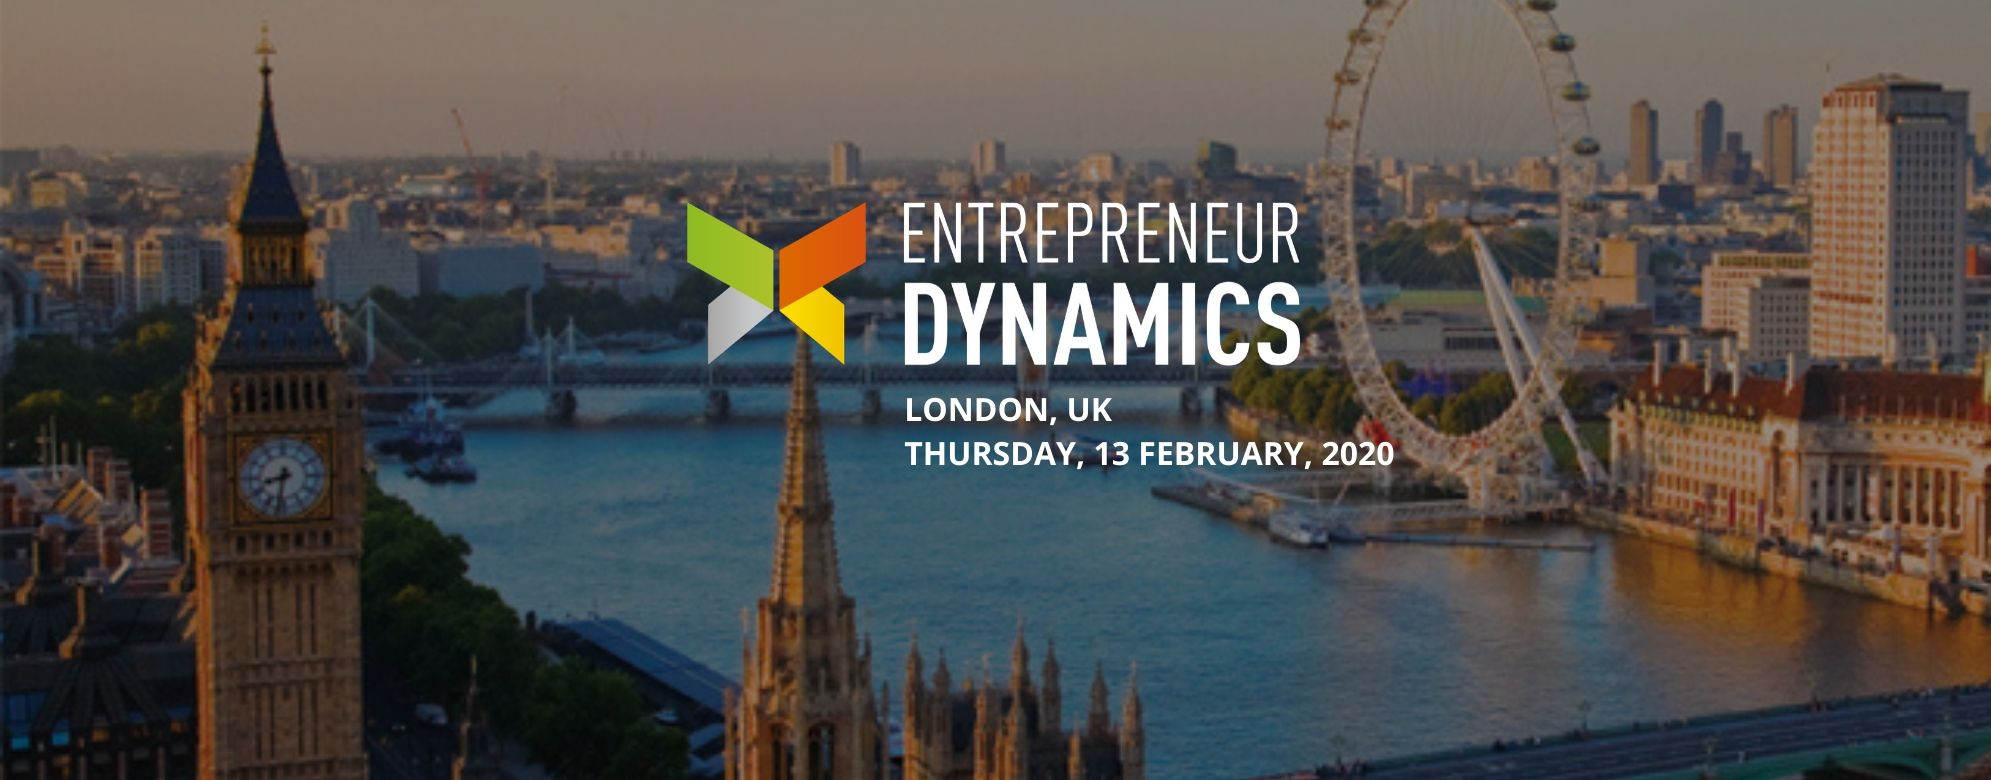 Entrepreneurs Dynamics - London